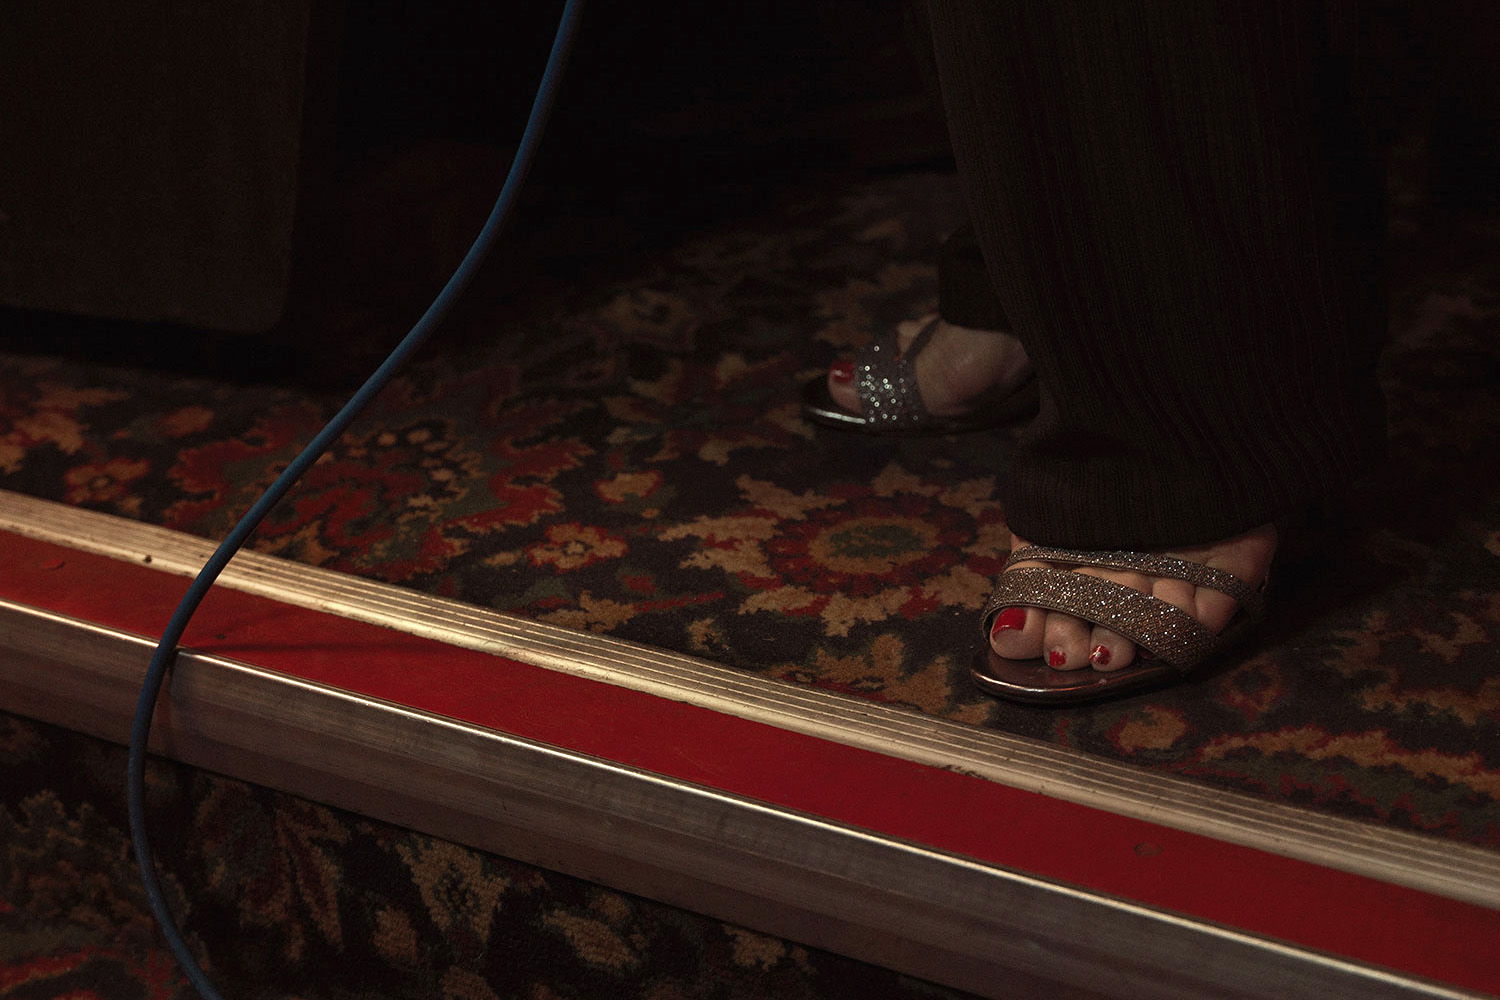 Painted toe nails, sandals, pub floor. Image from Last of the Old Crooners, Palm Tree pub by Tom Oldham